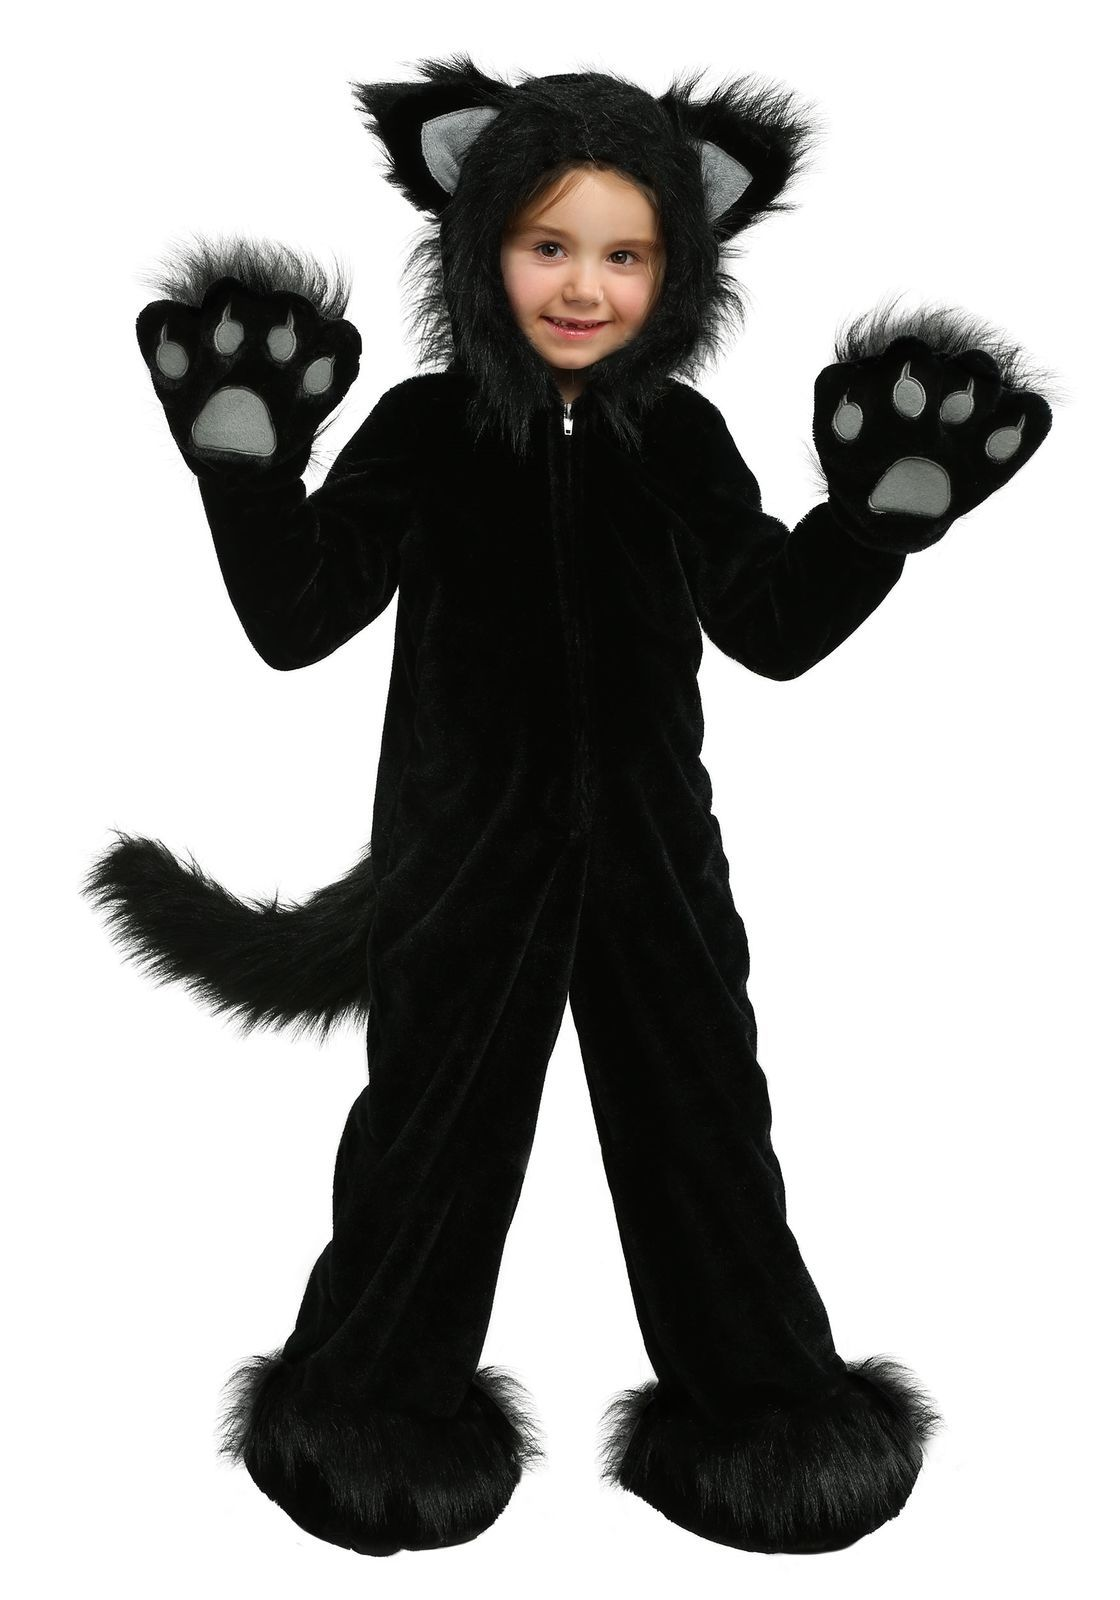 Premium Black Cat Kids Costume Black Cat Costumes Cat Costume Kids Cat Halloween Costume